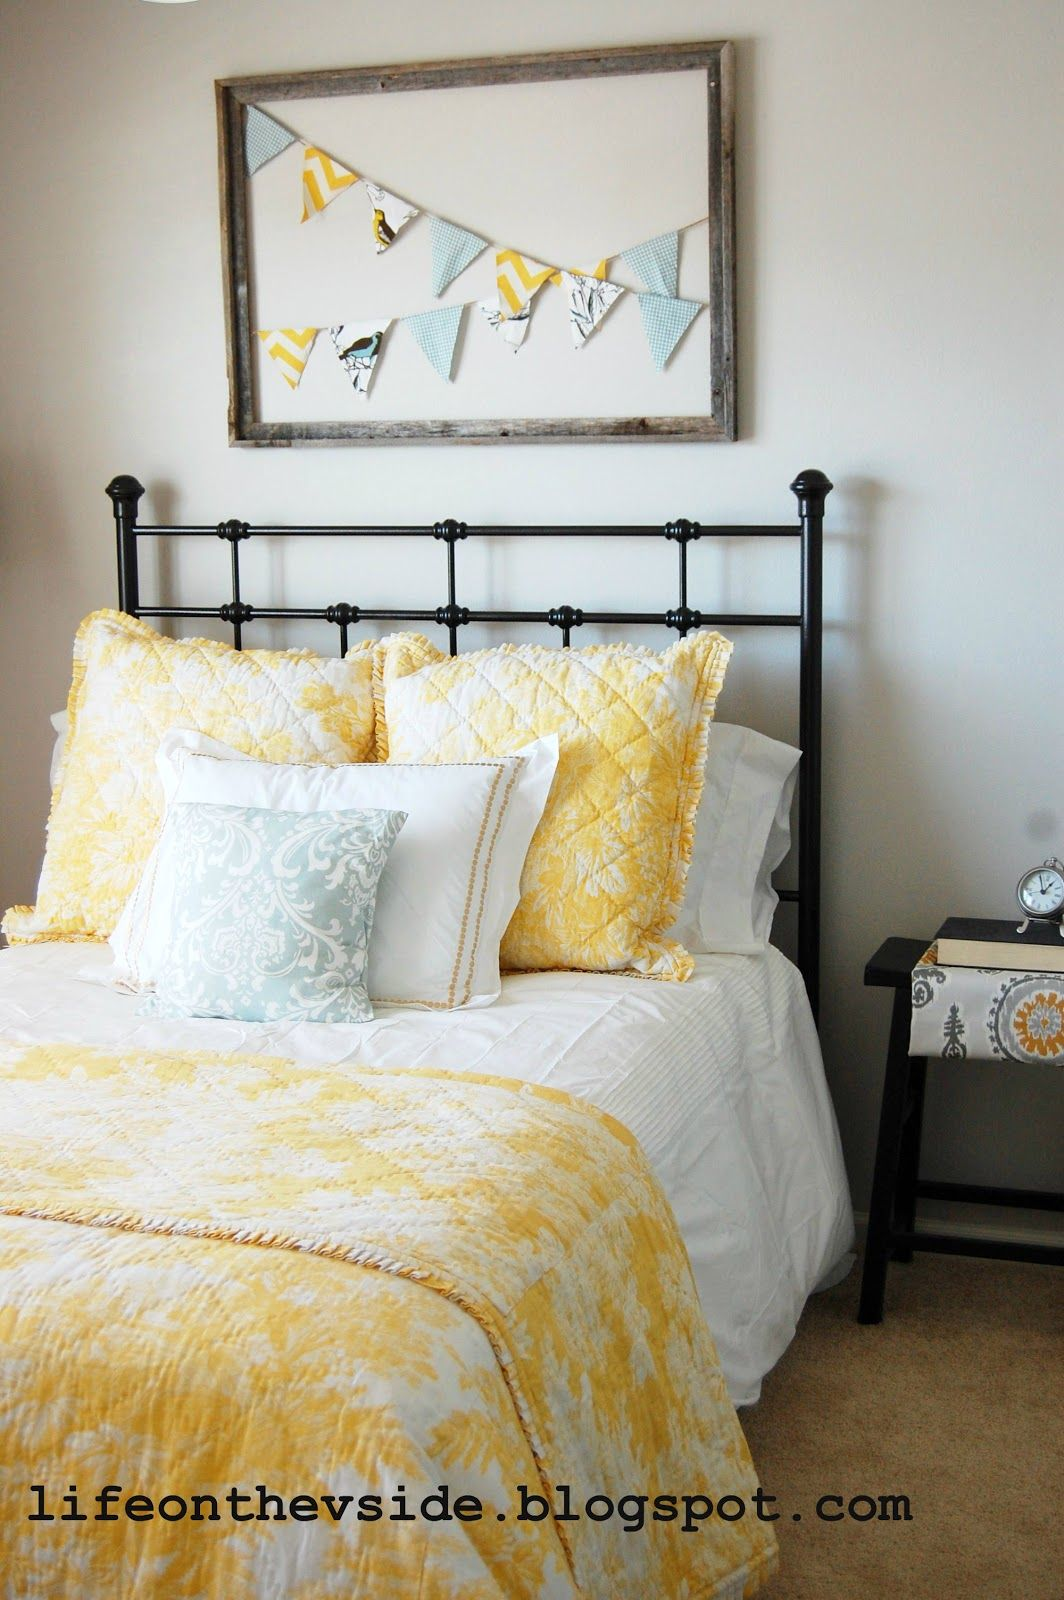 Bedroom colors yellow - Sherwin Williams Agreeable Gray Bedroom The Bedding Would Look Good In The Guest Room Grey Yellow